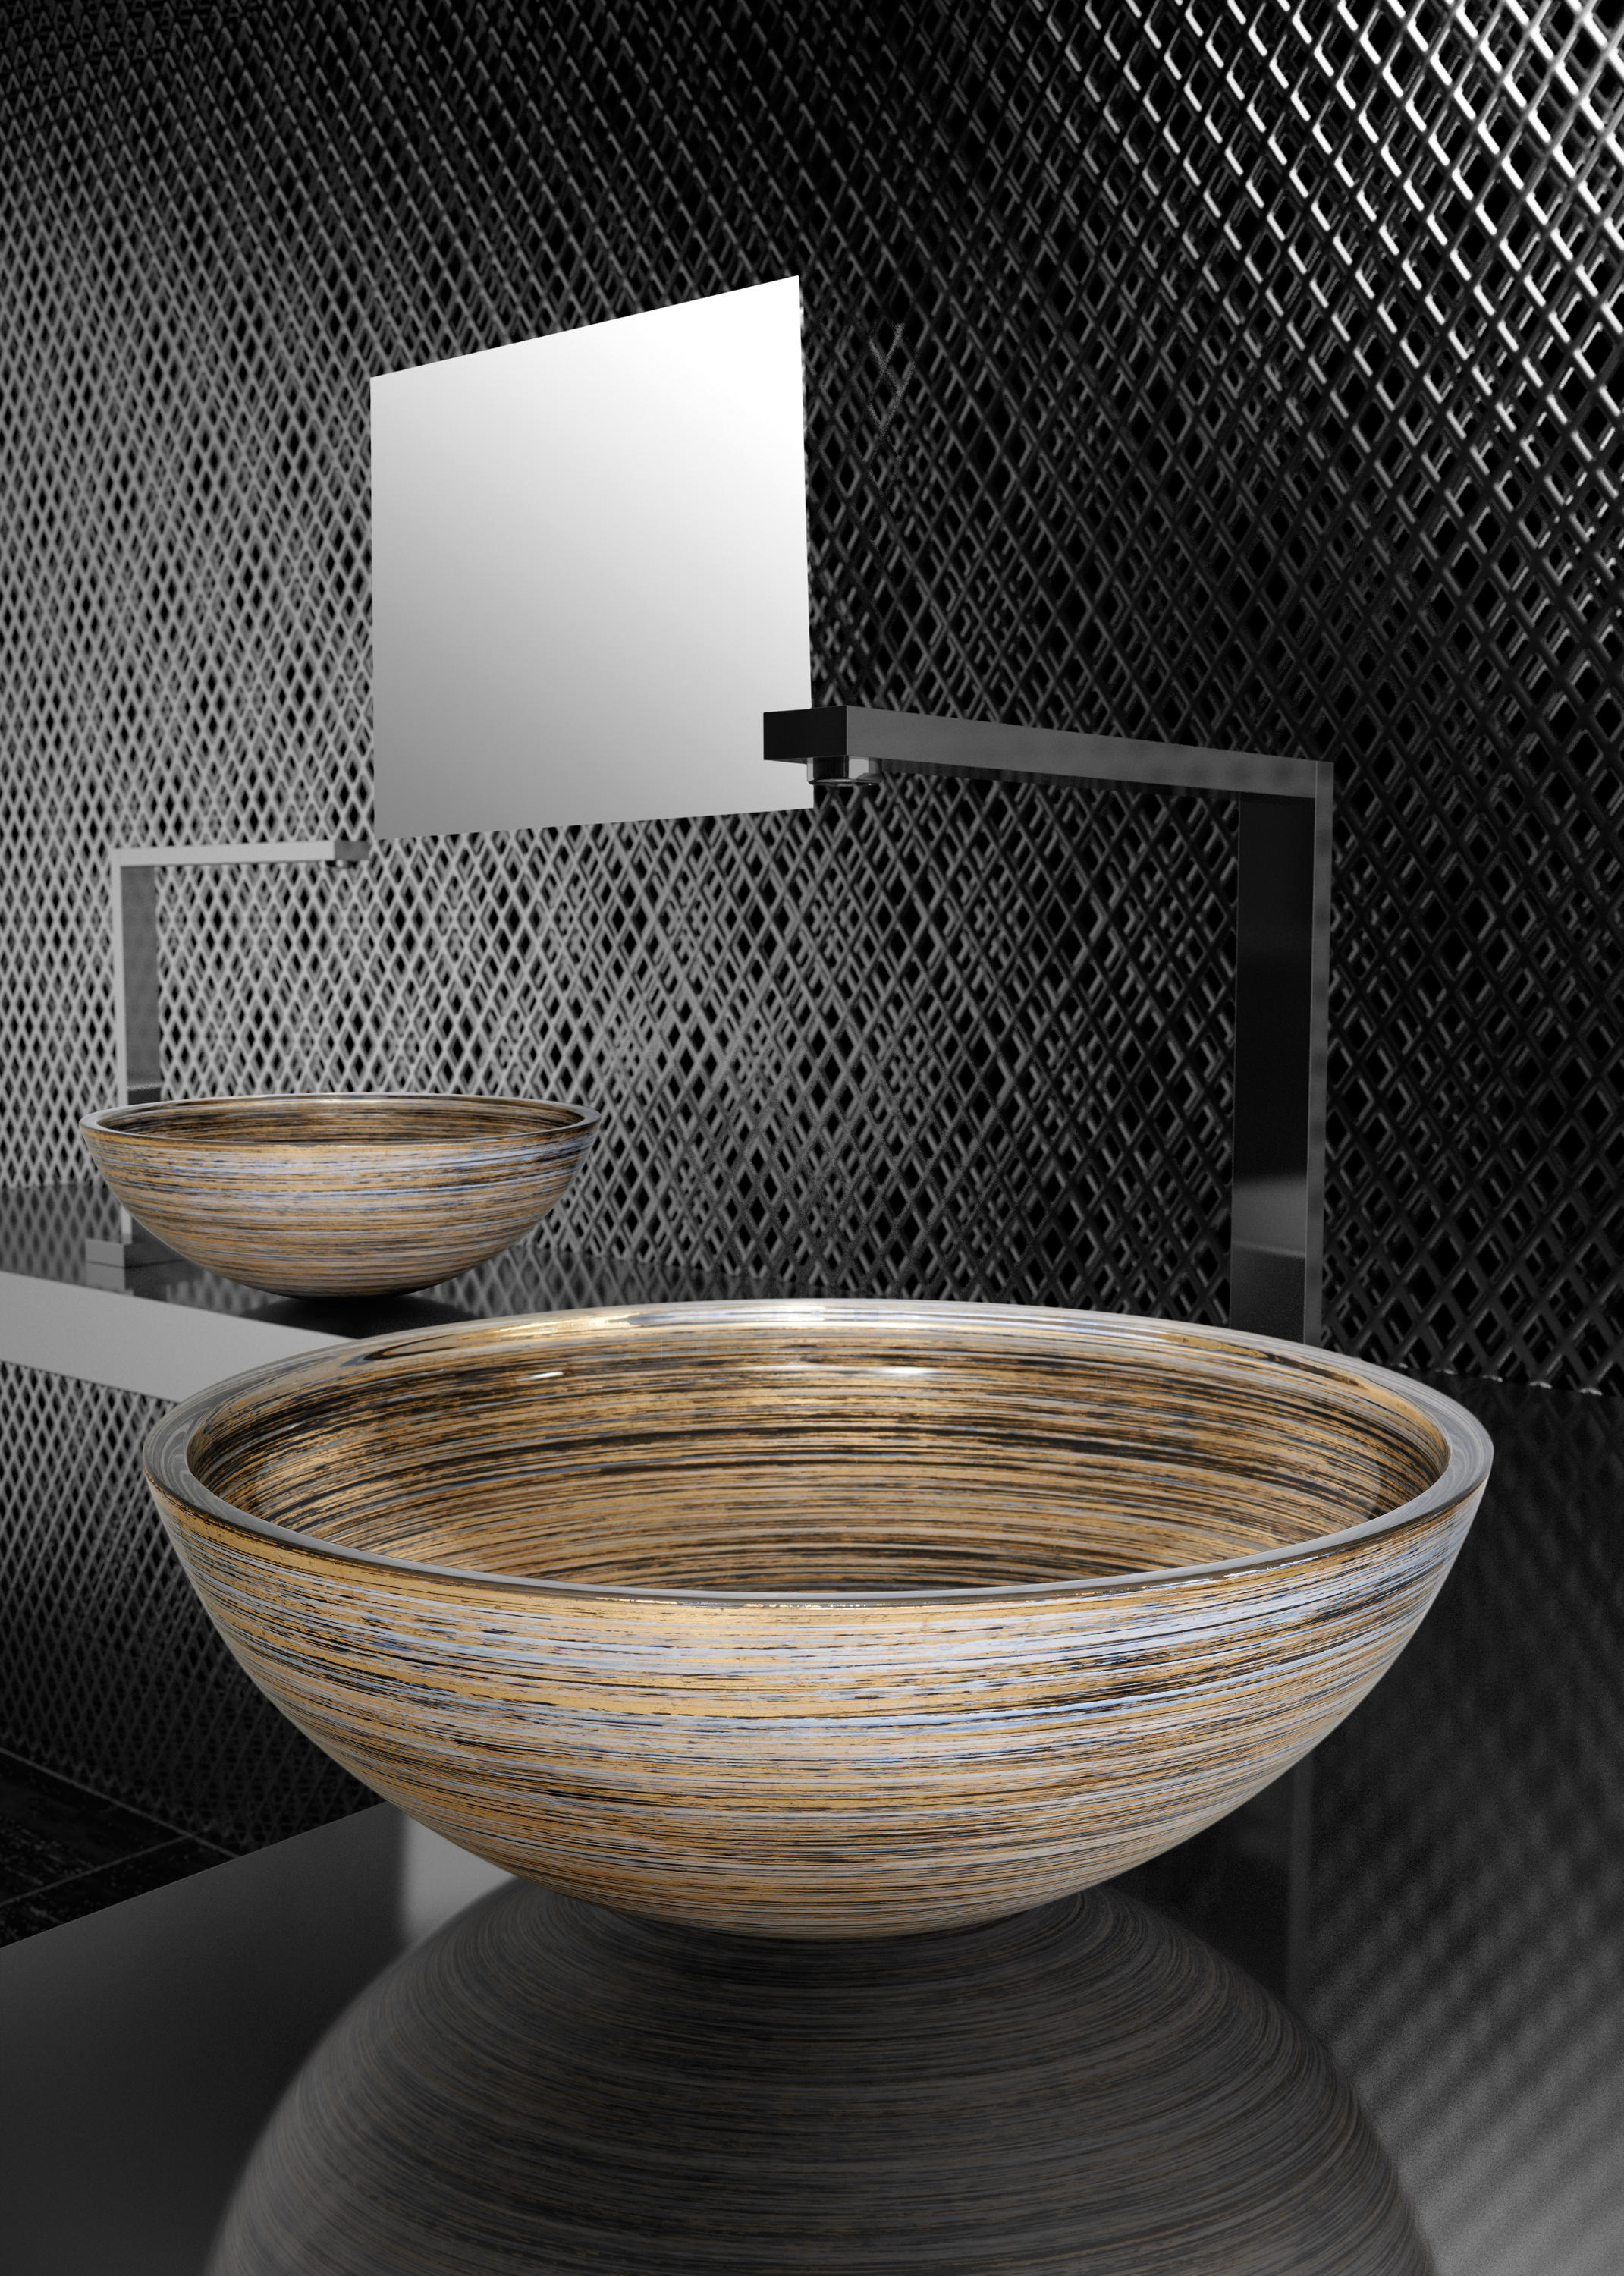 graffiti wash basins from glass design architonic. Black Bedroom Furniture Sets. Home Design Ideas